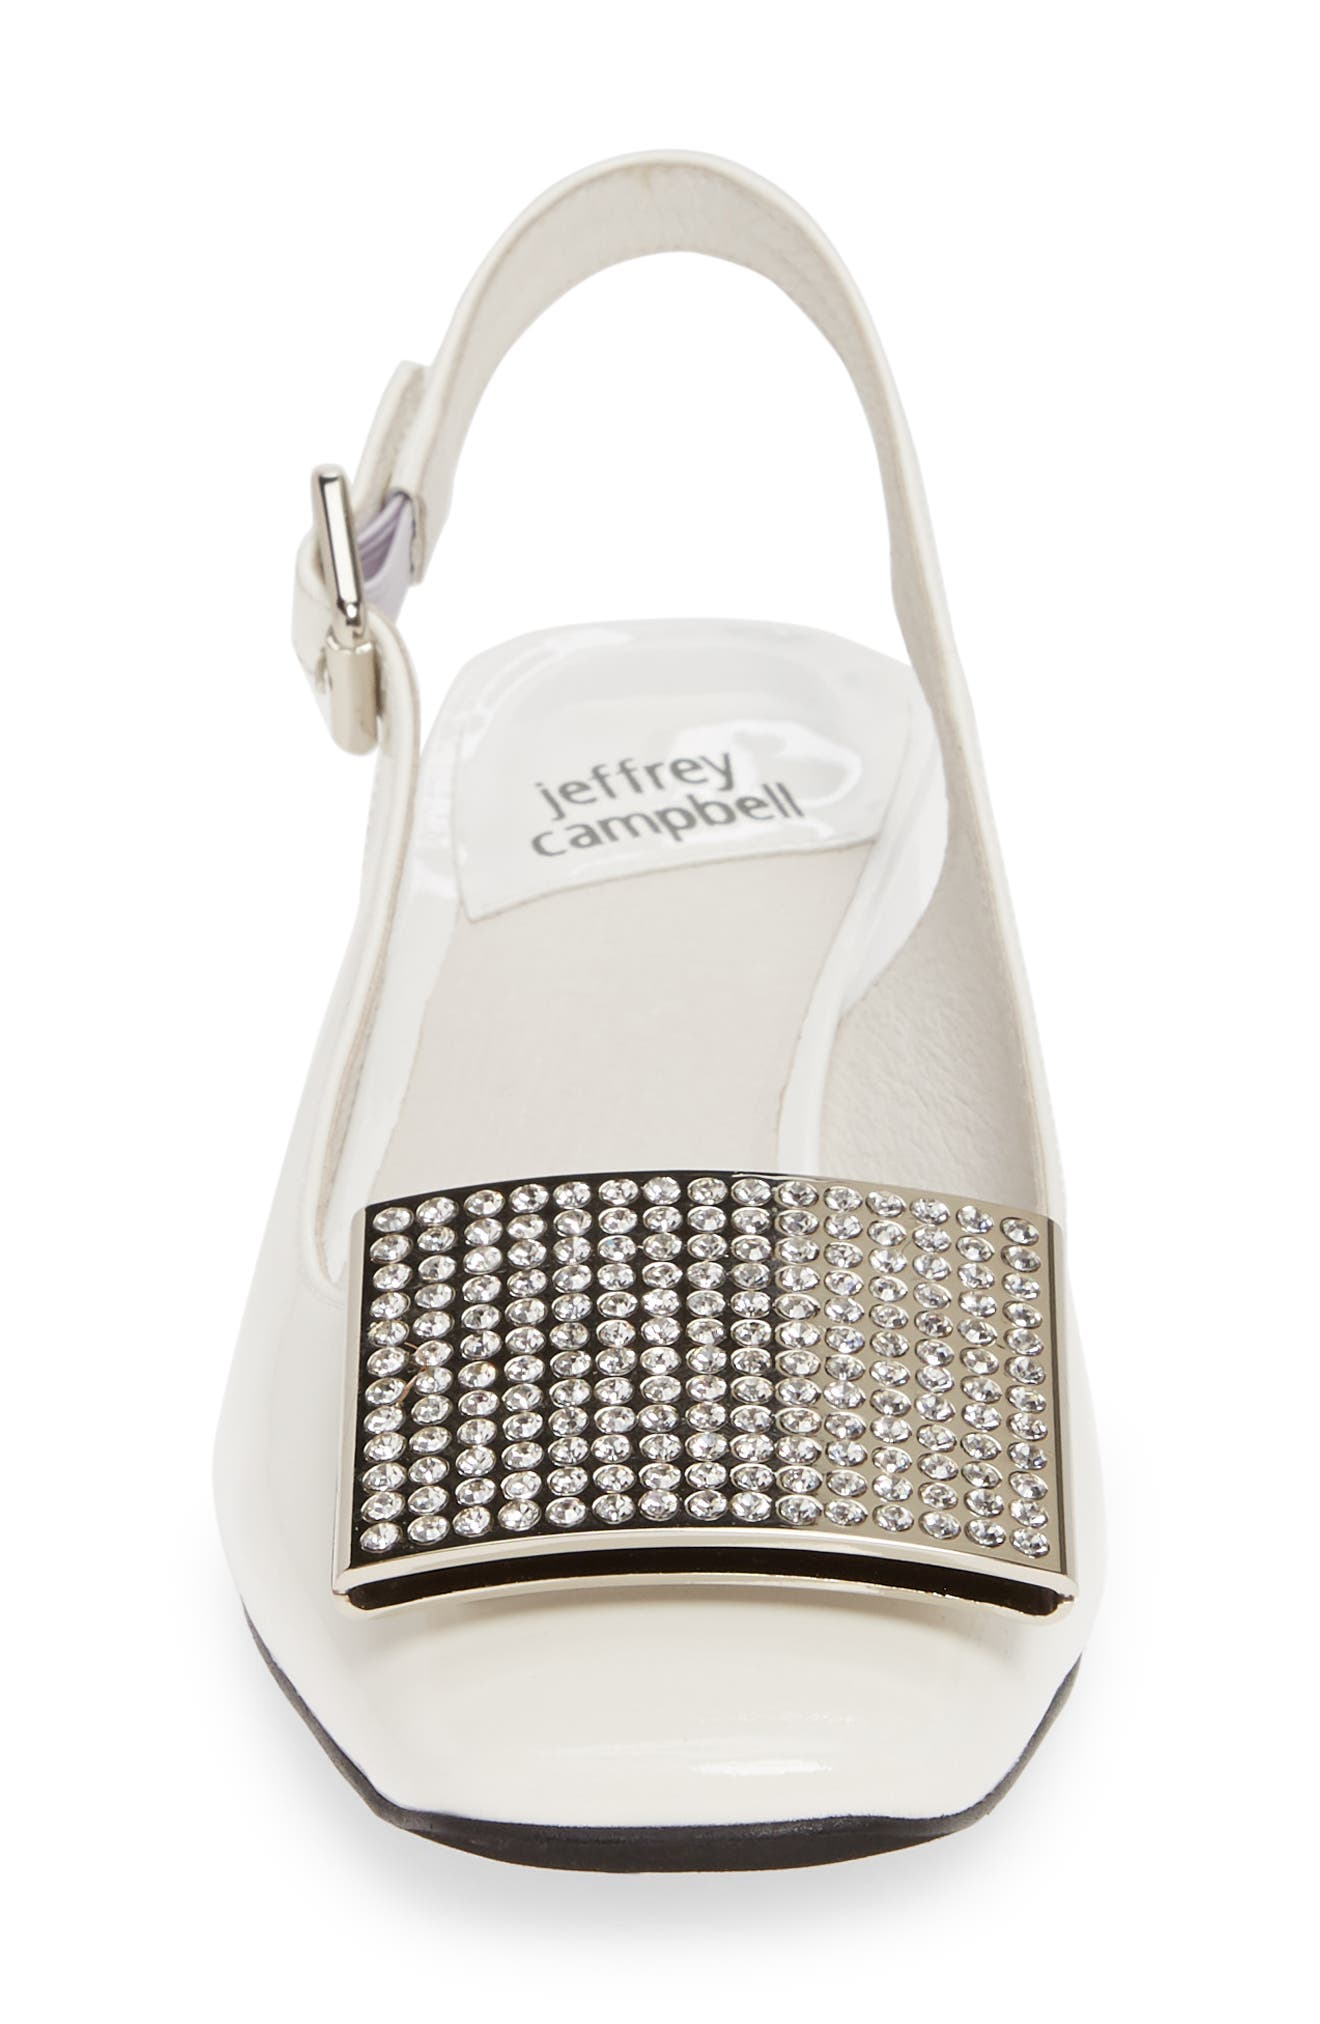 JEFFREY CAMPBELL,                             Billion Jewel Slingback Pump,                             Alternate thumbnail 4, color,                             WHITE PATENT LEATHER/ SILVER